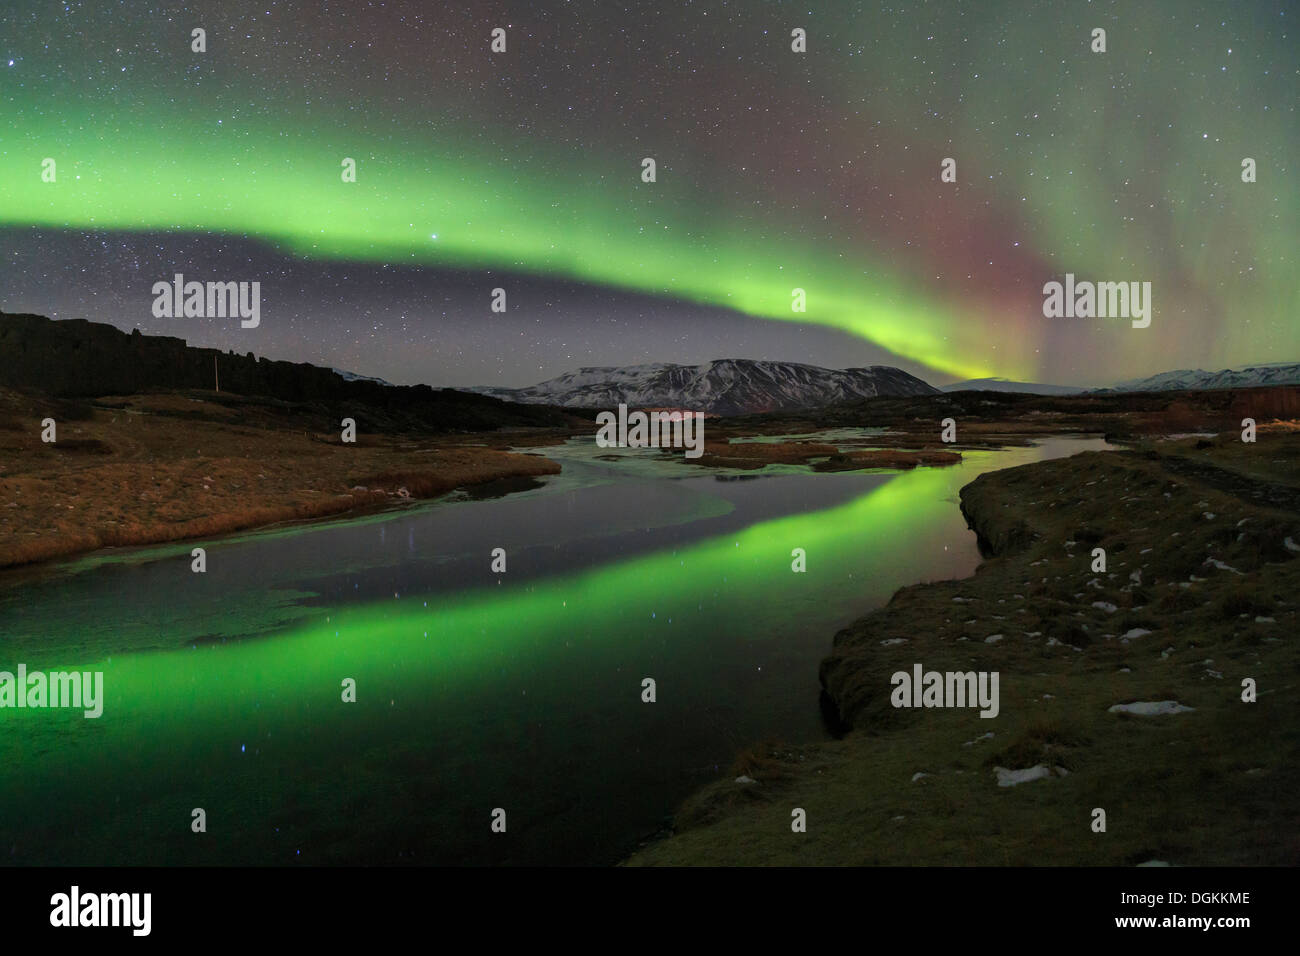 Aurora borealis over Lake Thingvallavatn in Thingvellir National Park in Iceland. Stock Photo